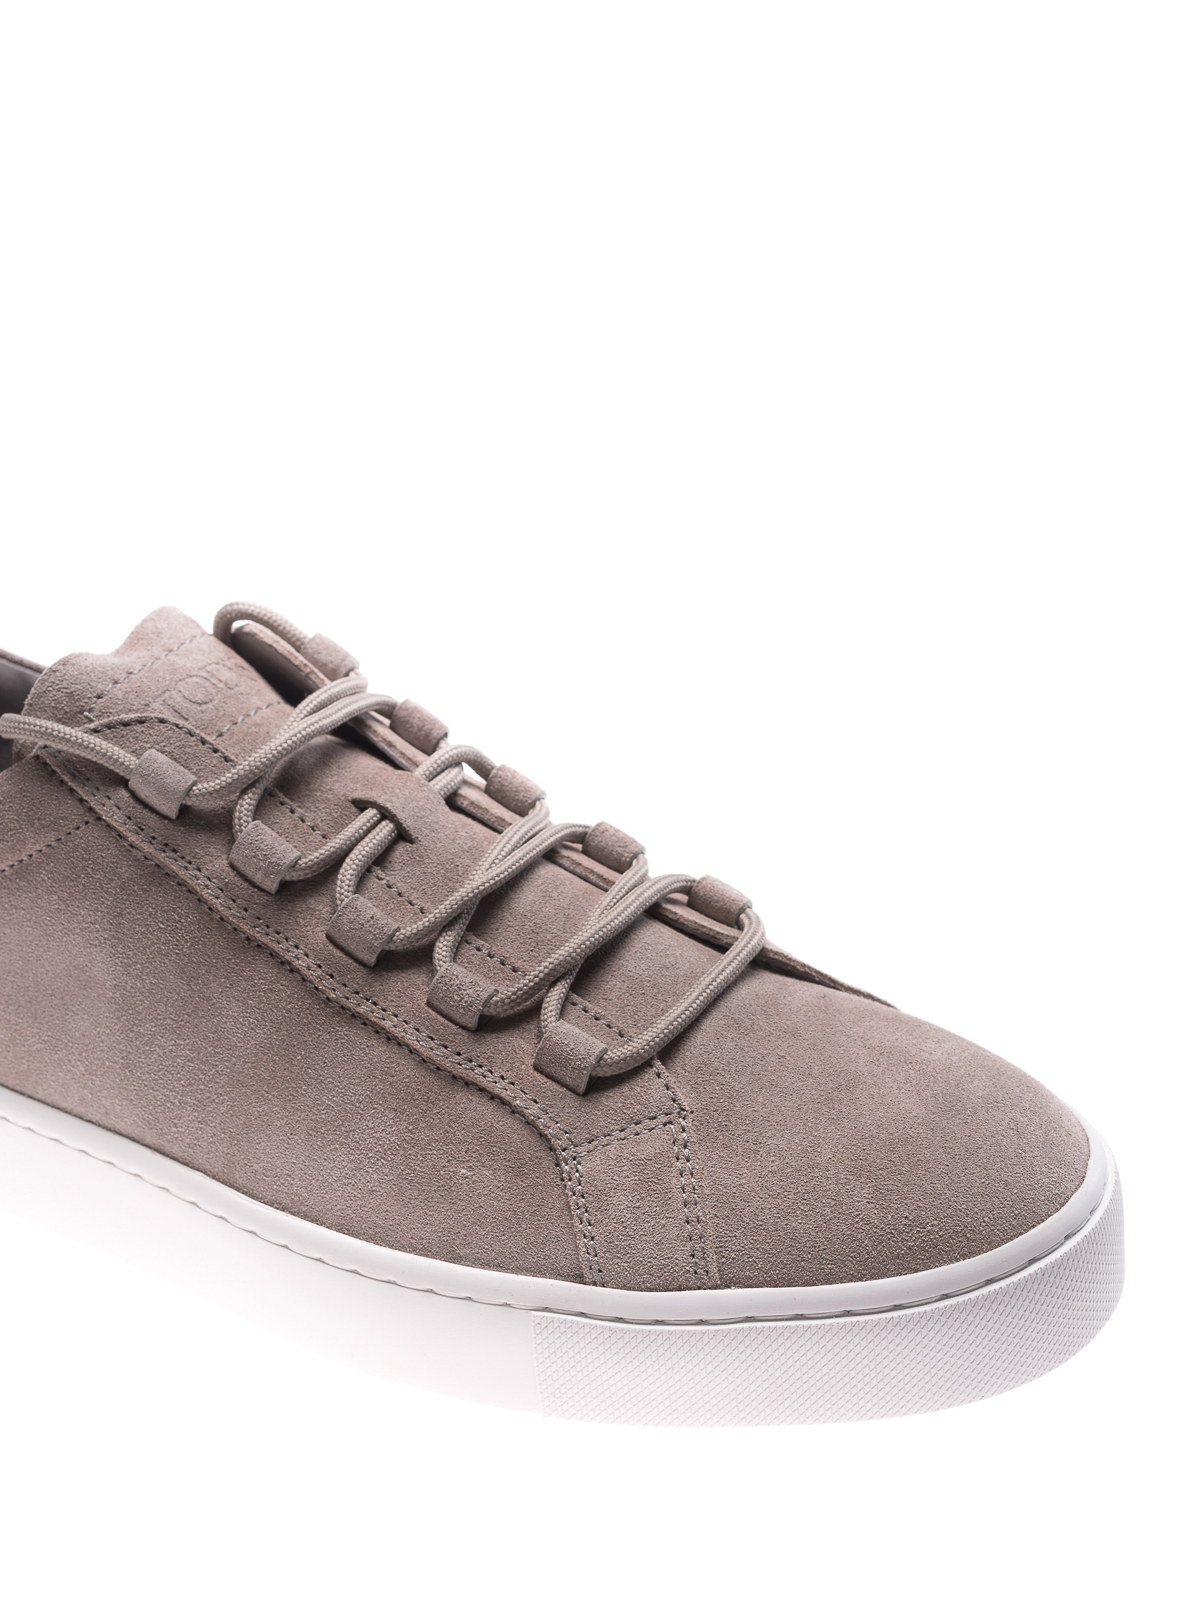 Taupe suede sneakers Tod's X3cQeU